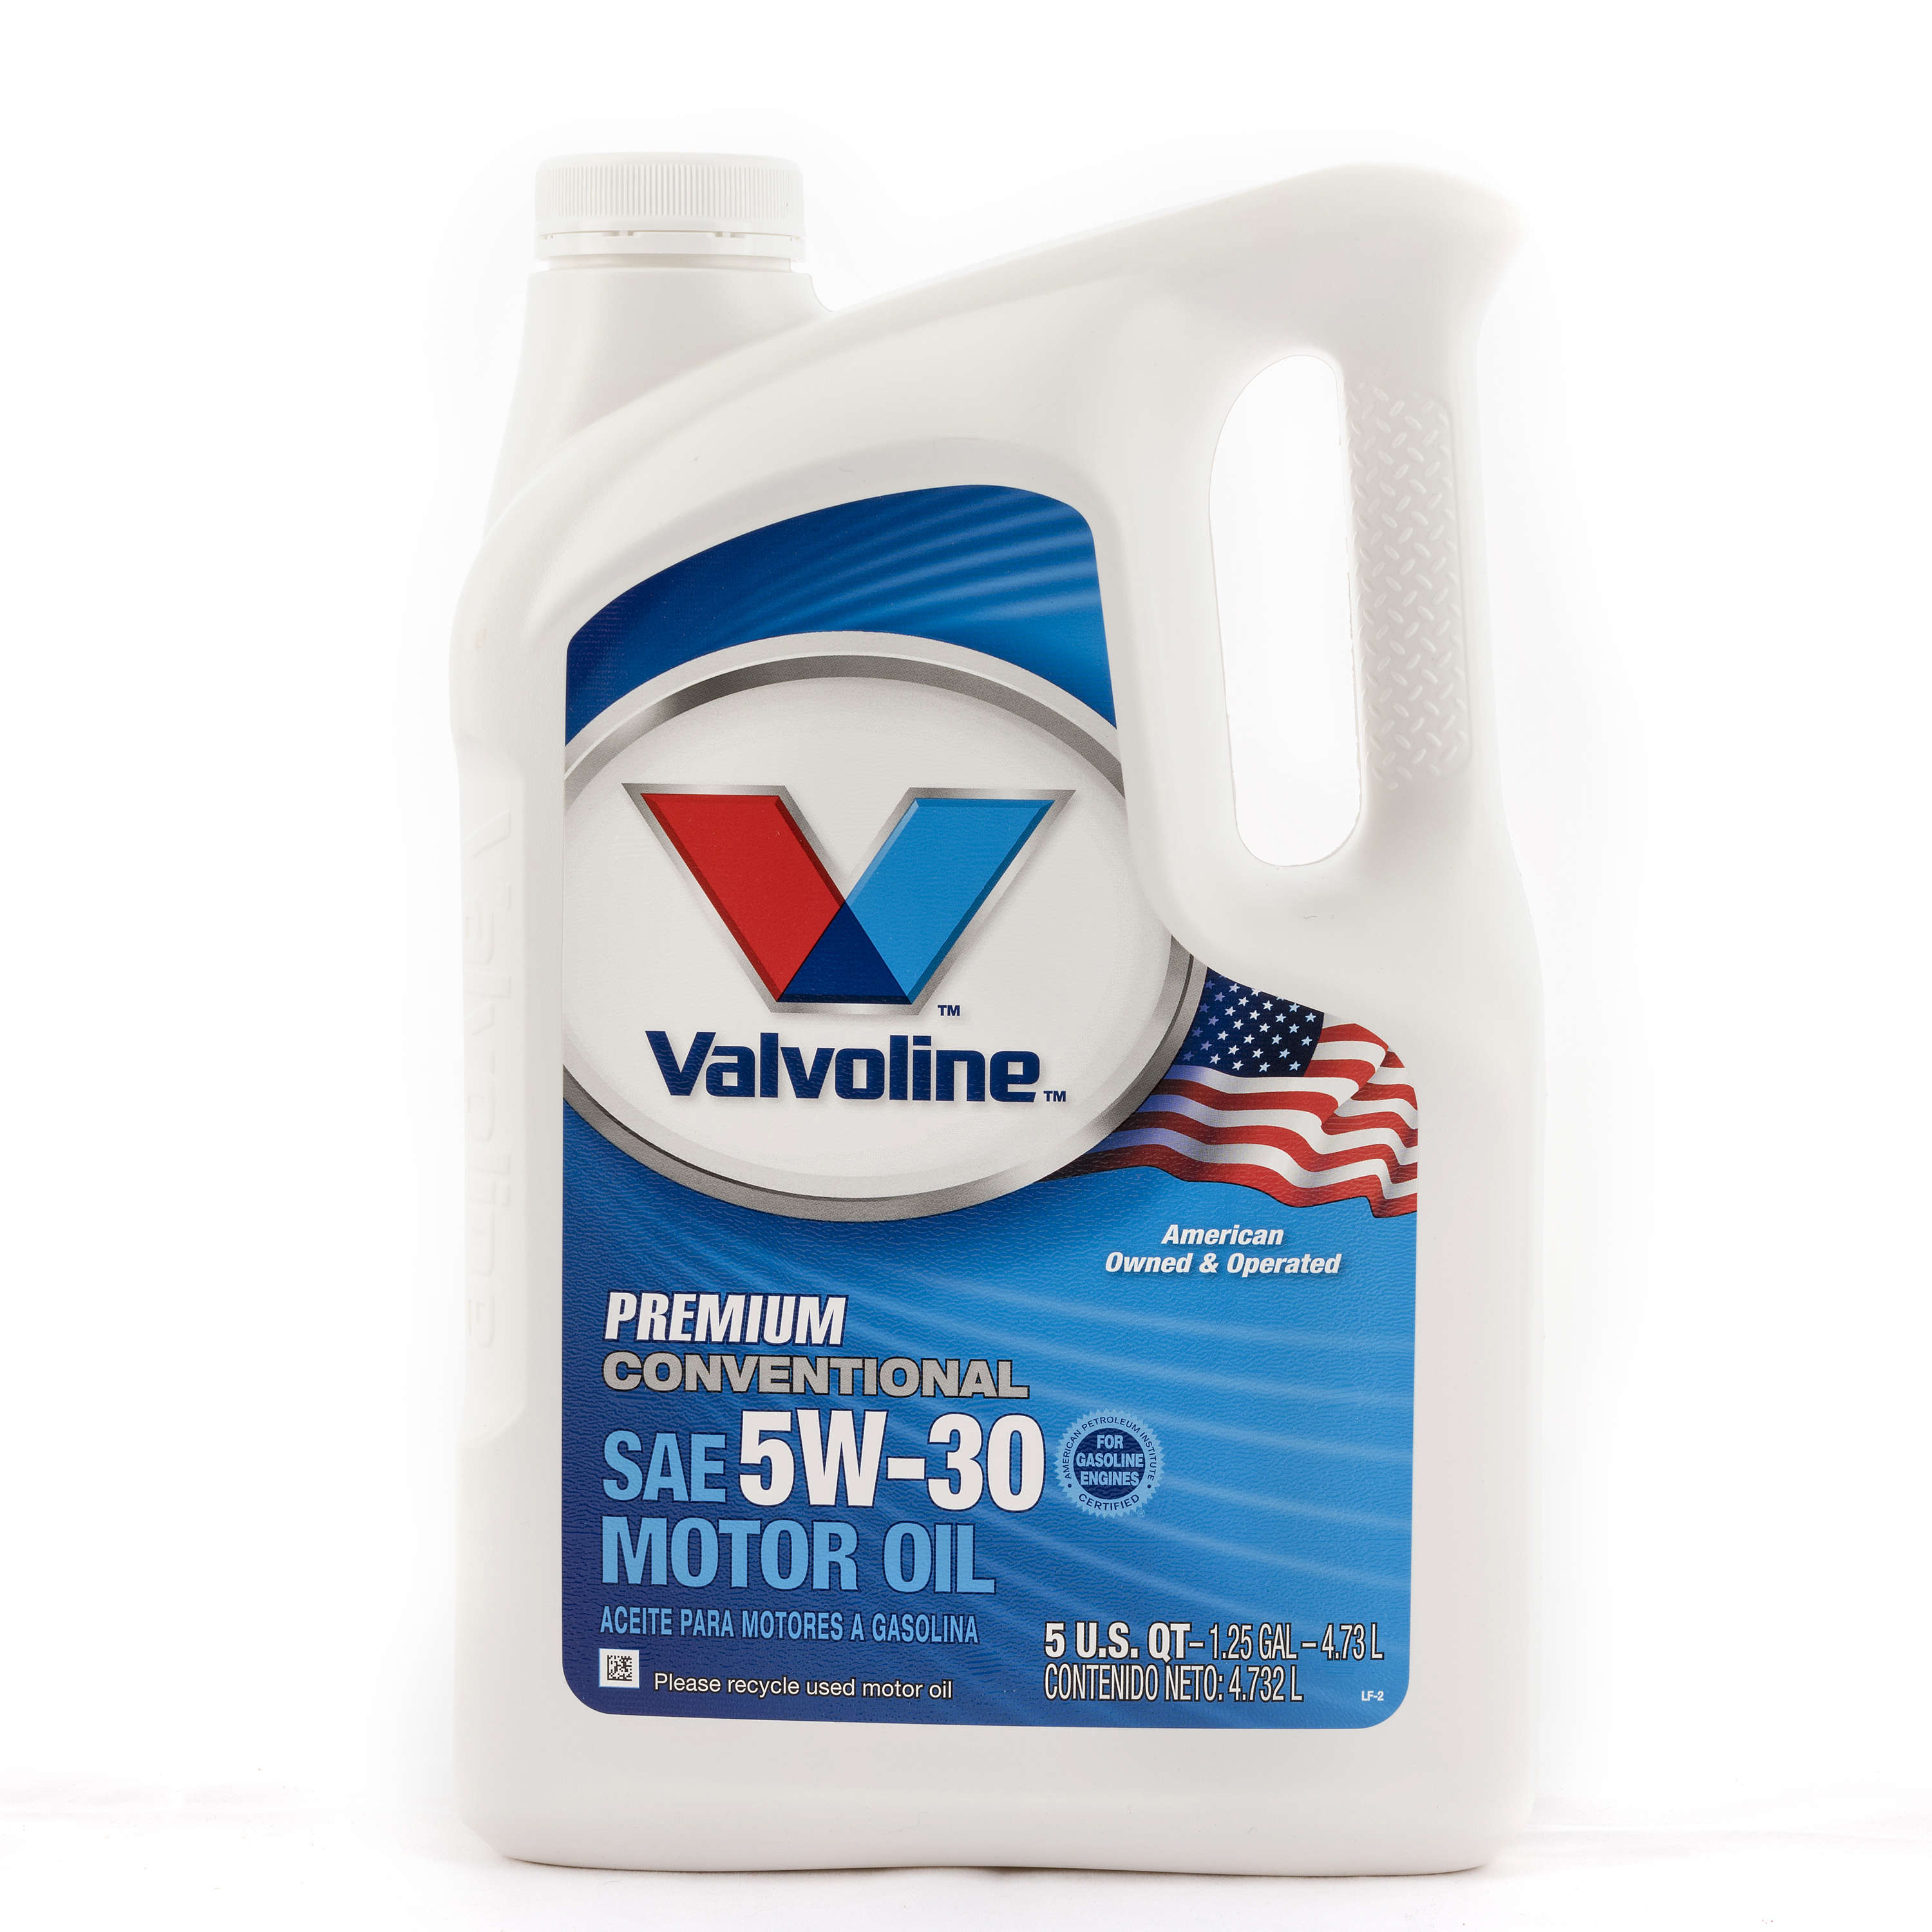 Valvoline Daily Protection 5W-30 Motor Oil, 5 Quarts